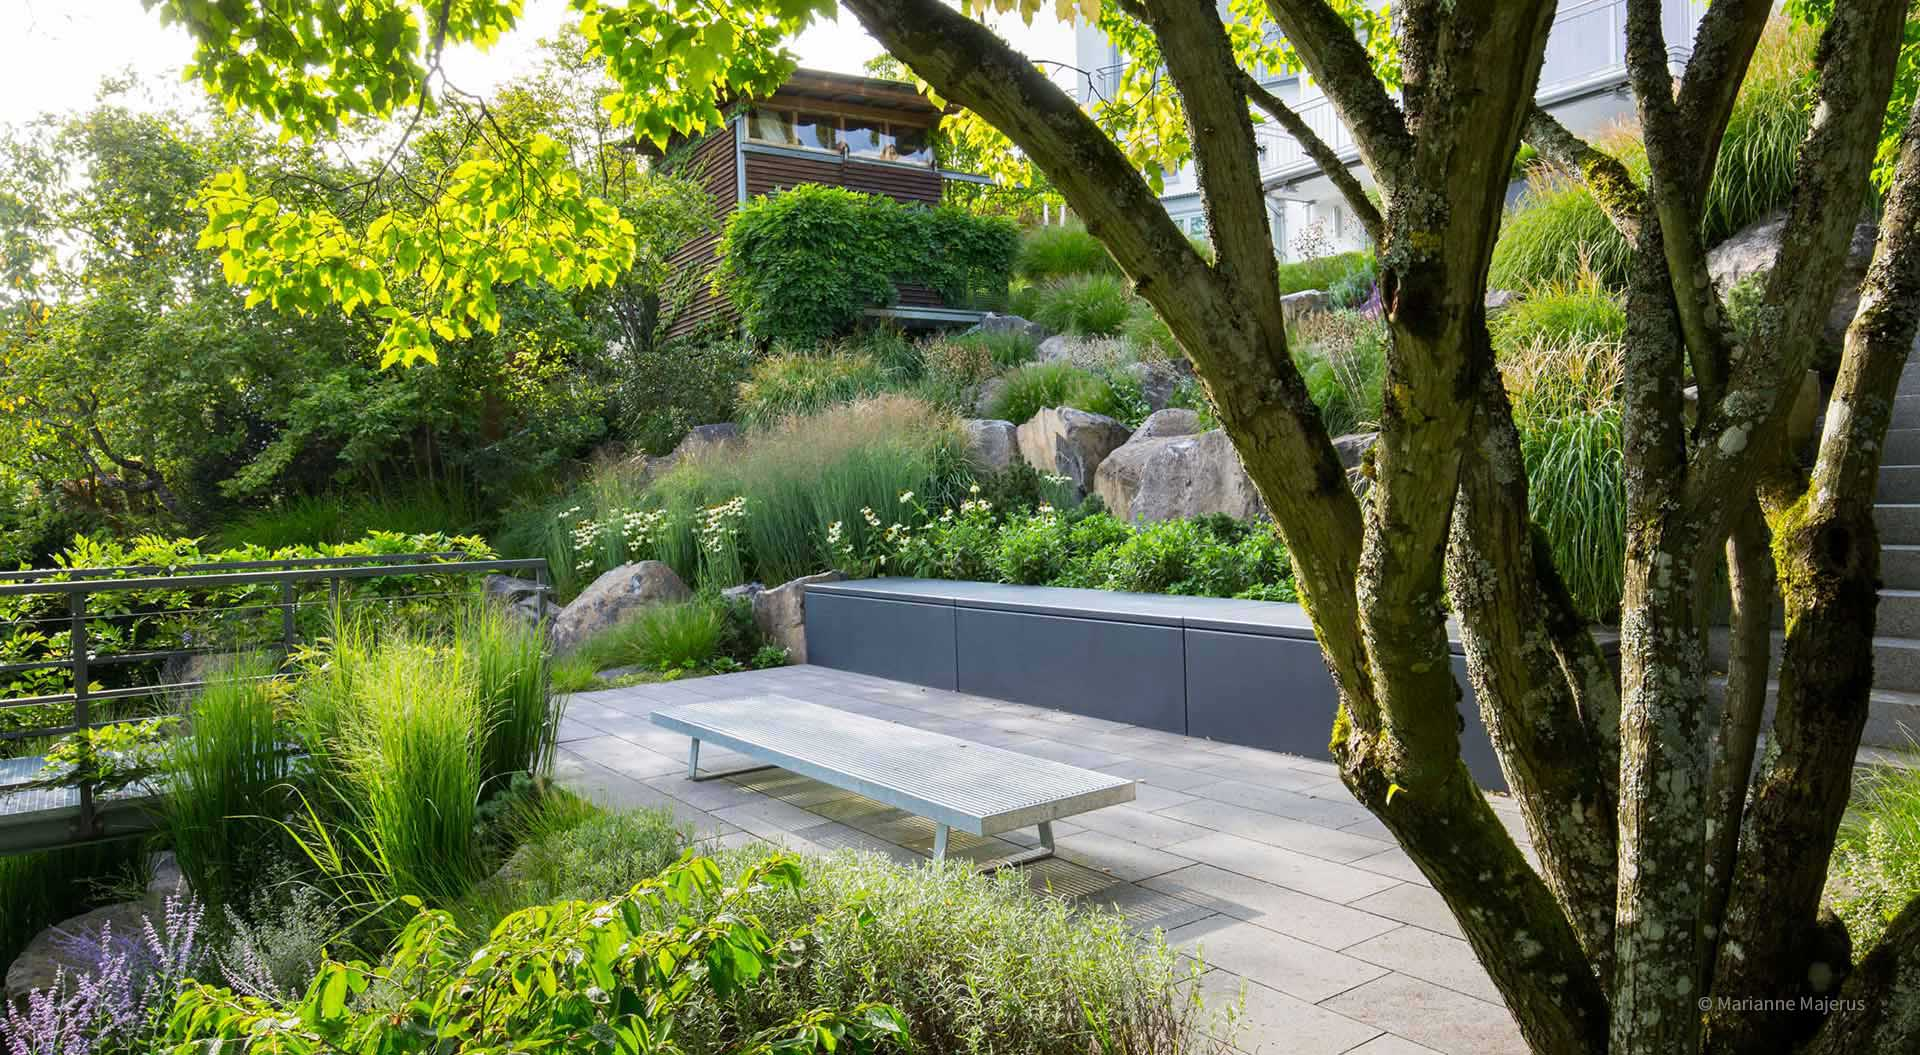 Individual garden with trees, patio, plants, steps and flowers